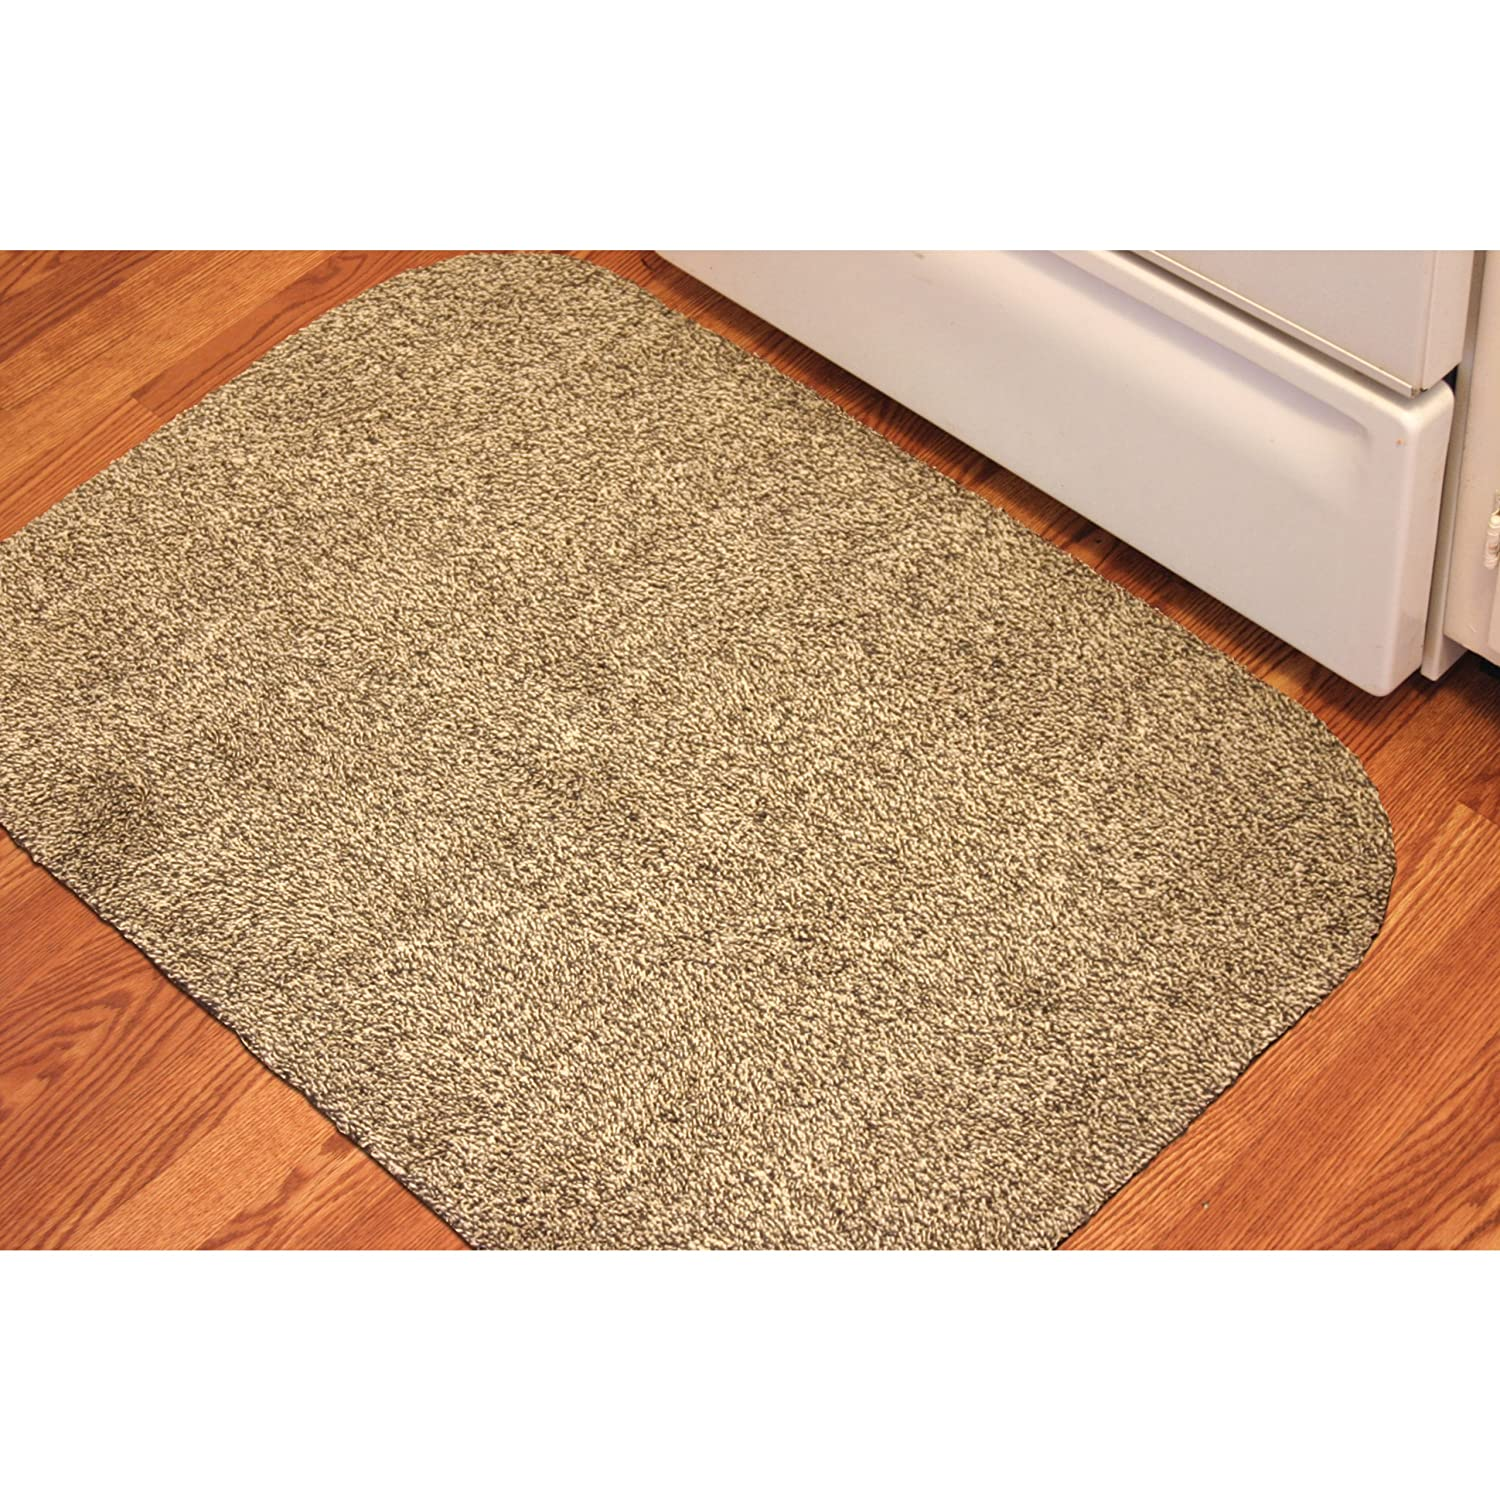 gray reviews birch olivia lane rug rugs guard water windows pdp mats